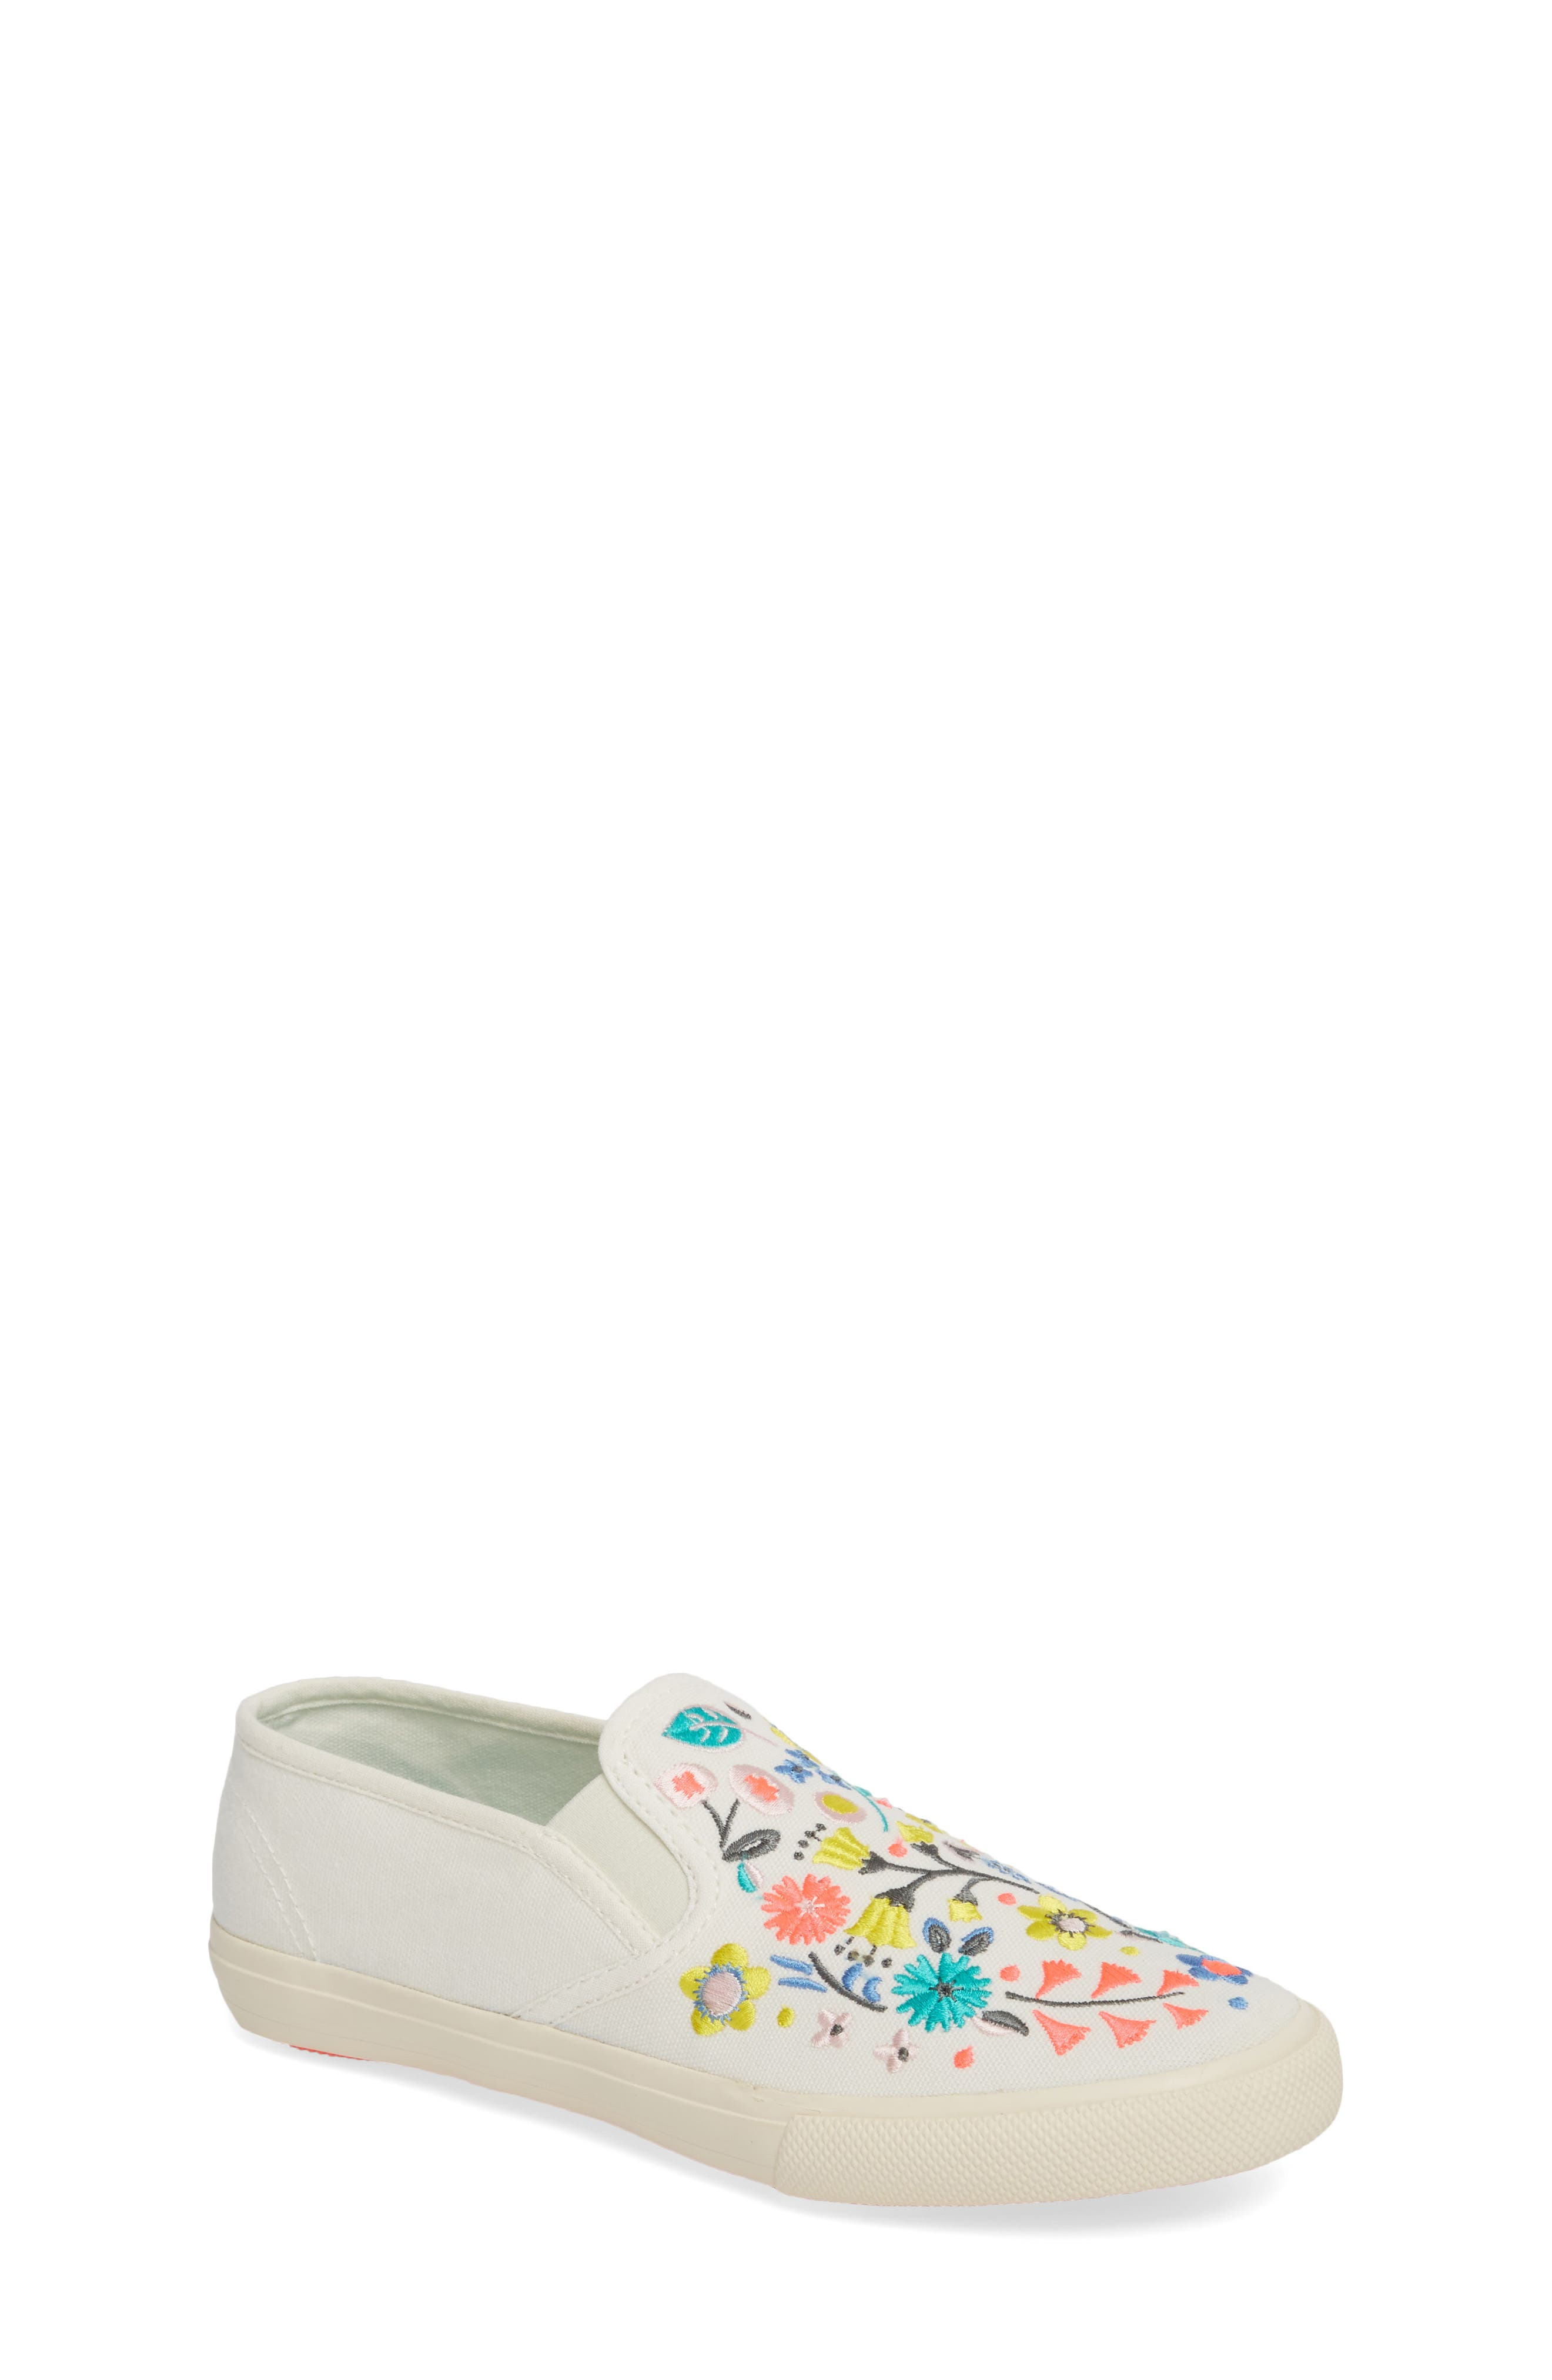 Boden Embroidered Slip-On Sneaker,                             Main thumbnail 1, color,                             114